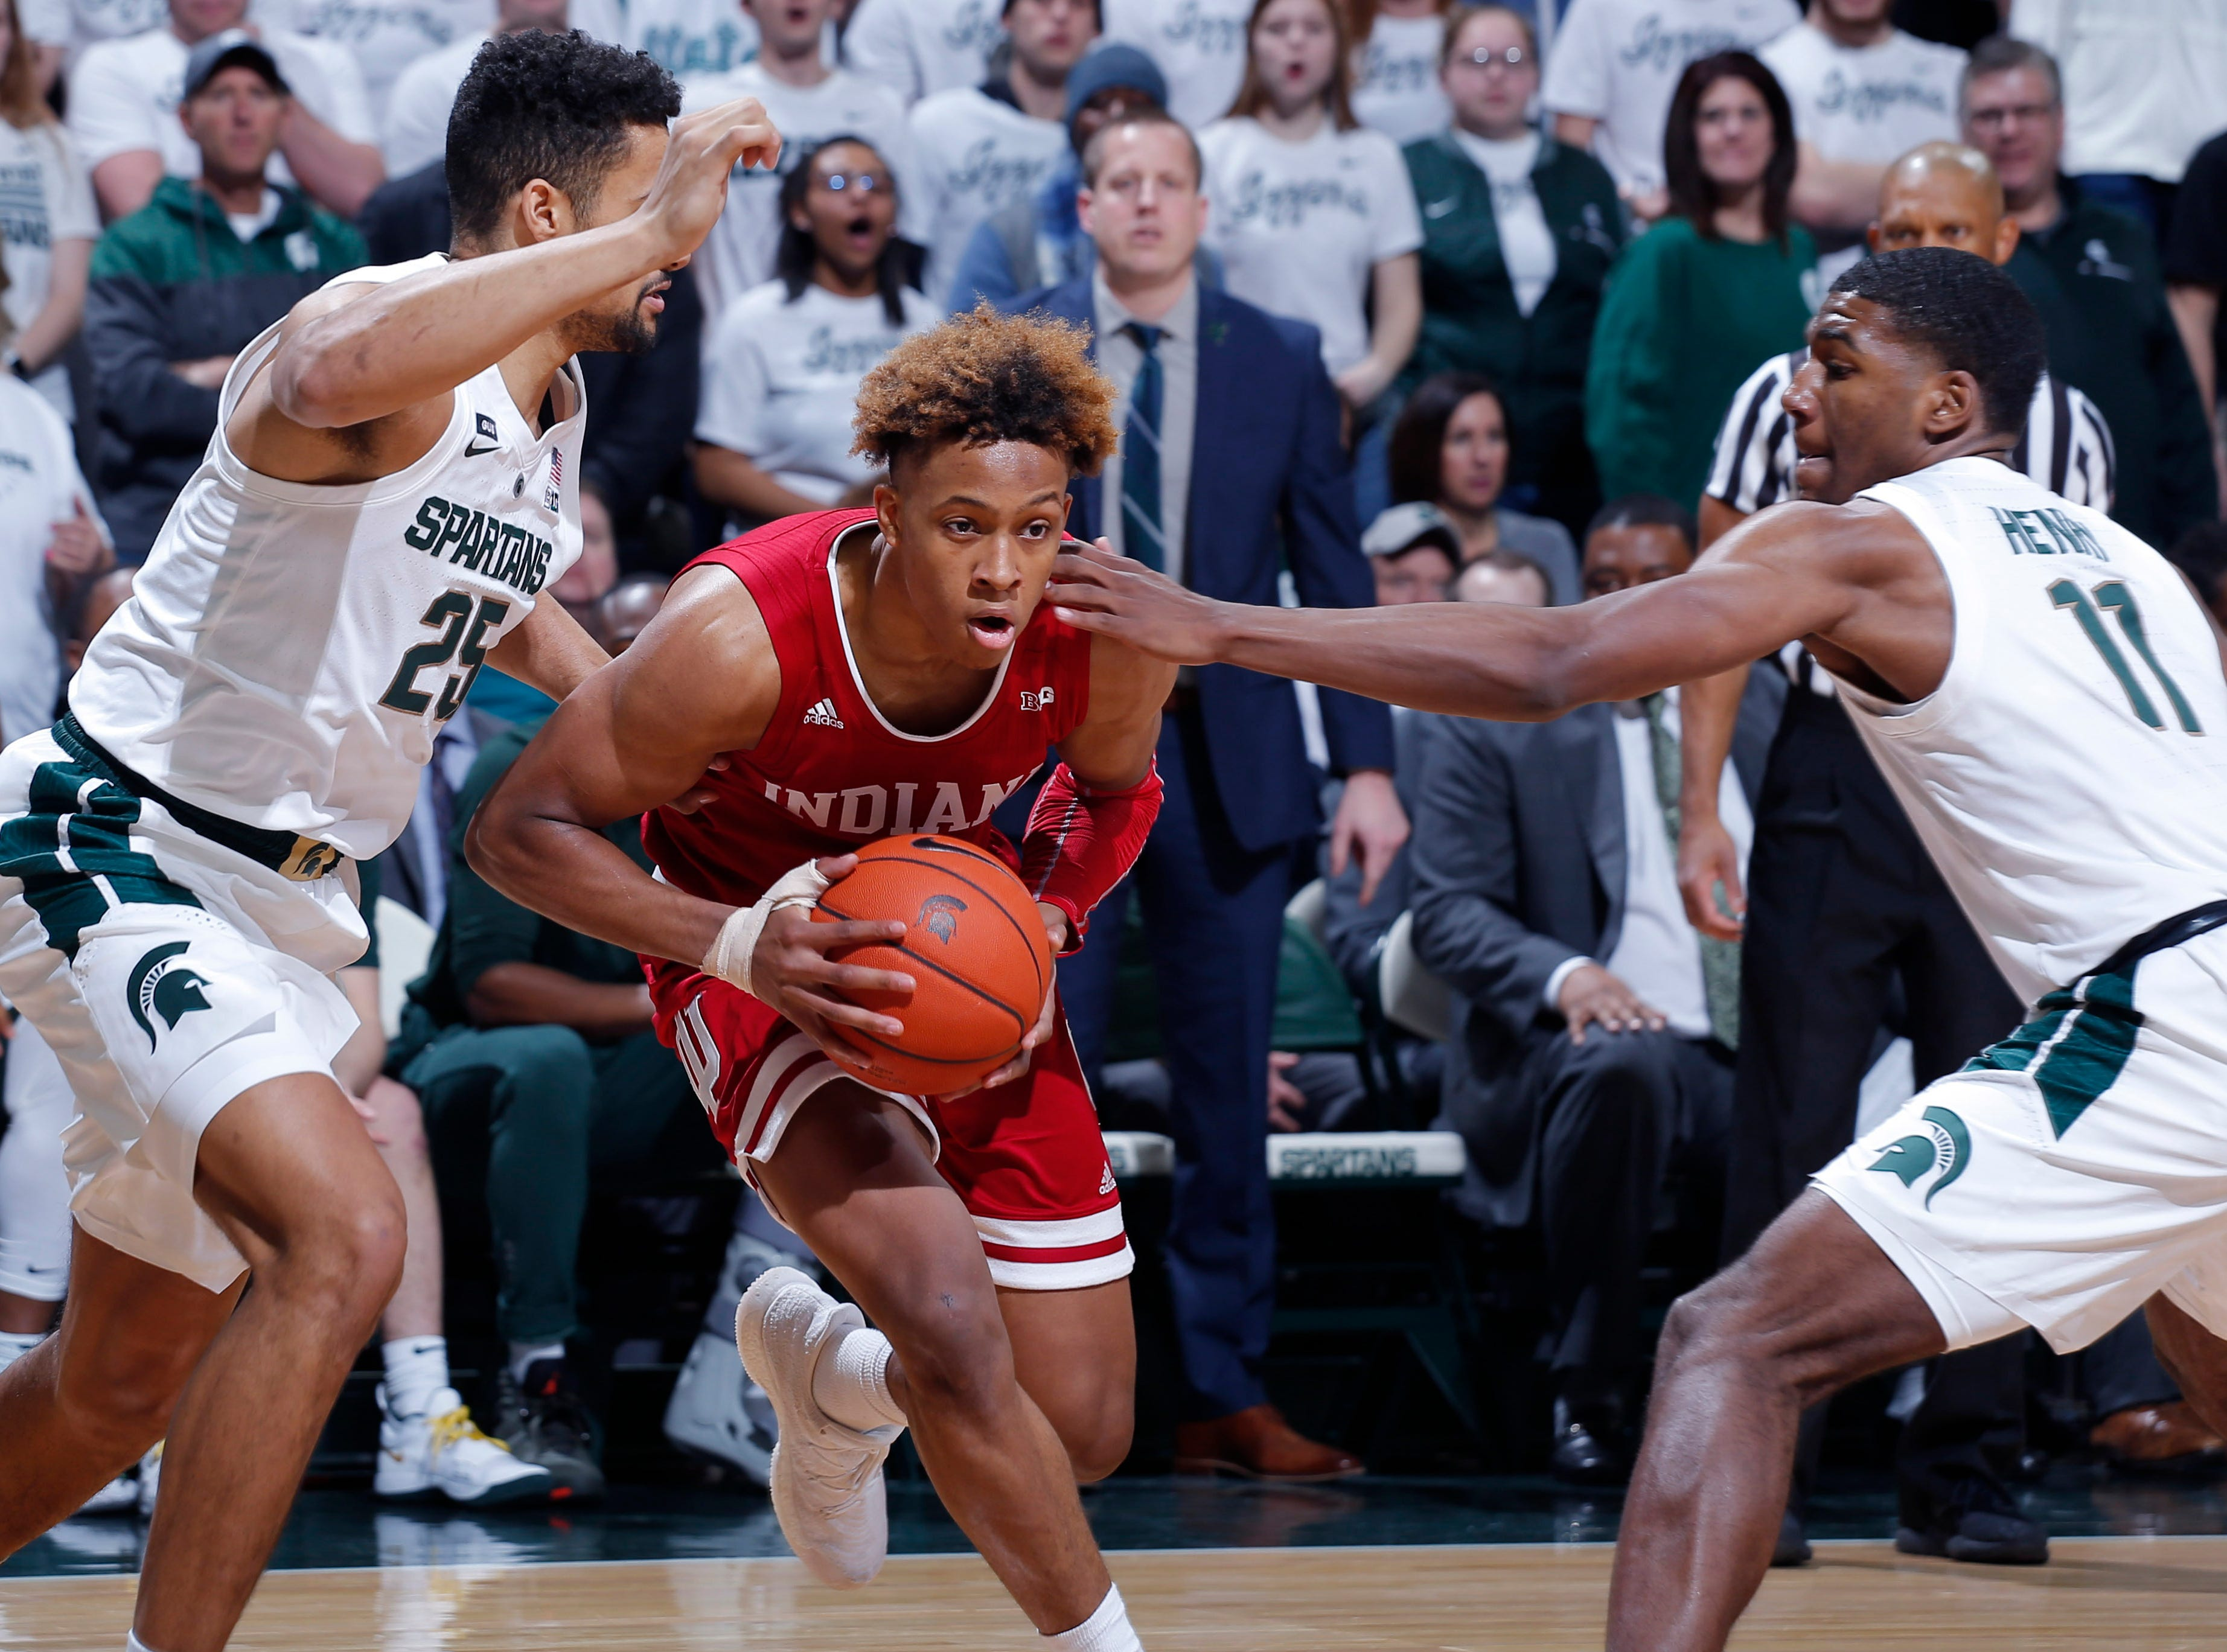 Indiana's Romeo Langford, center, drives between Michigan State's Kenny Goins, left, and Aaron Henry (11) during the first half of an NCAA college basketball game, Saturday, Feb. 2, 2019, in East Lansing, Mich.